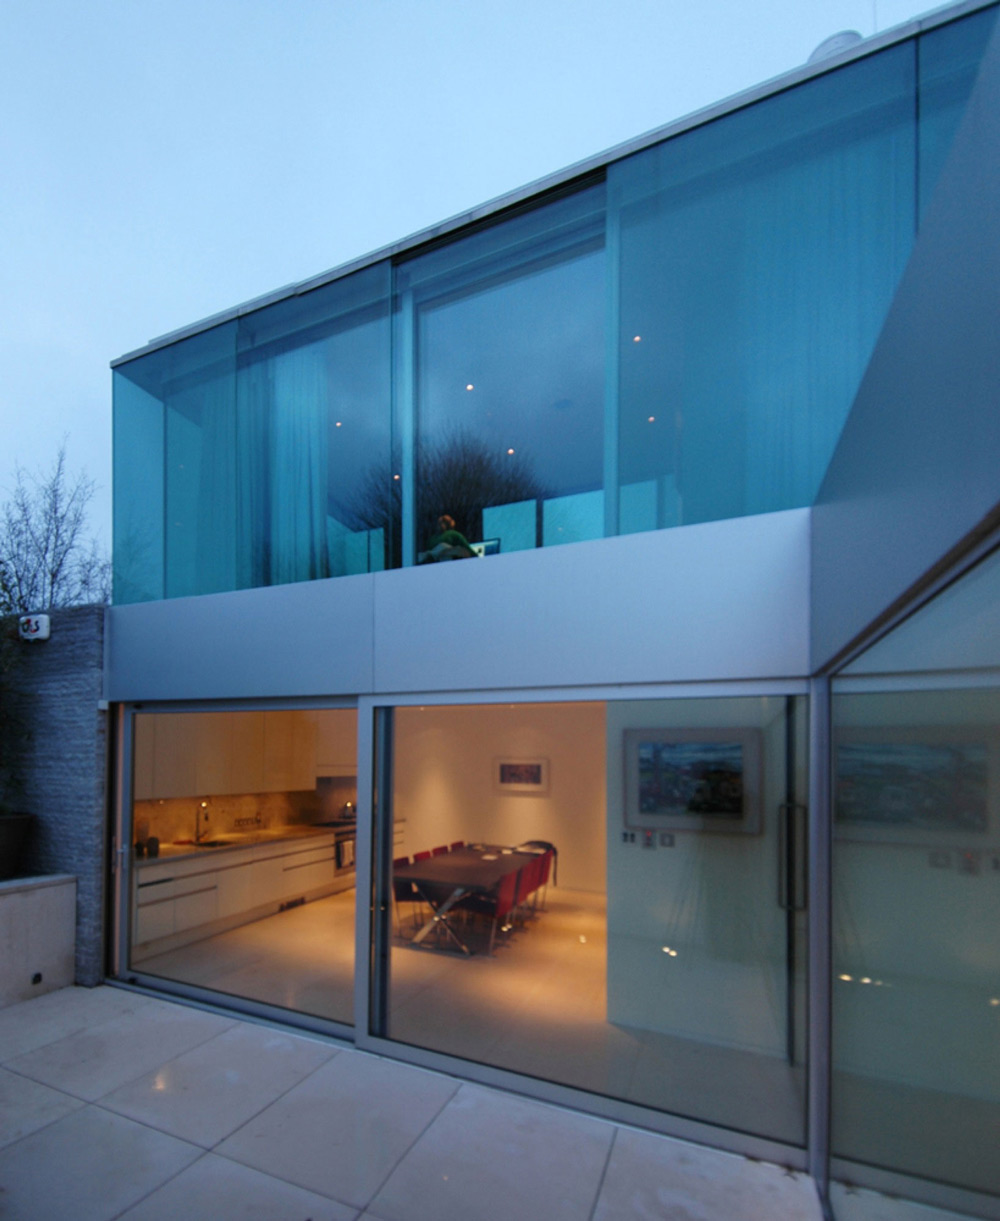 Terrace, Patio Doors, Burren House in Dublin, Ireland by Níall McLaughlin Architects